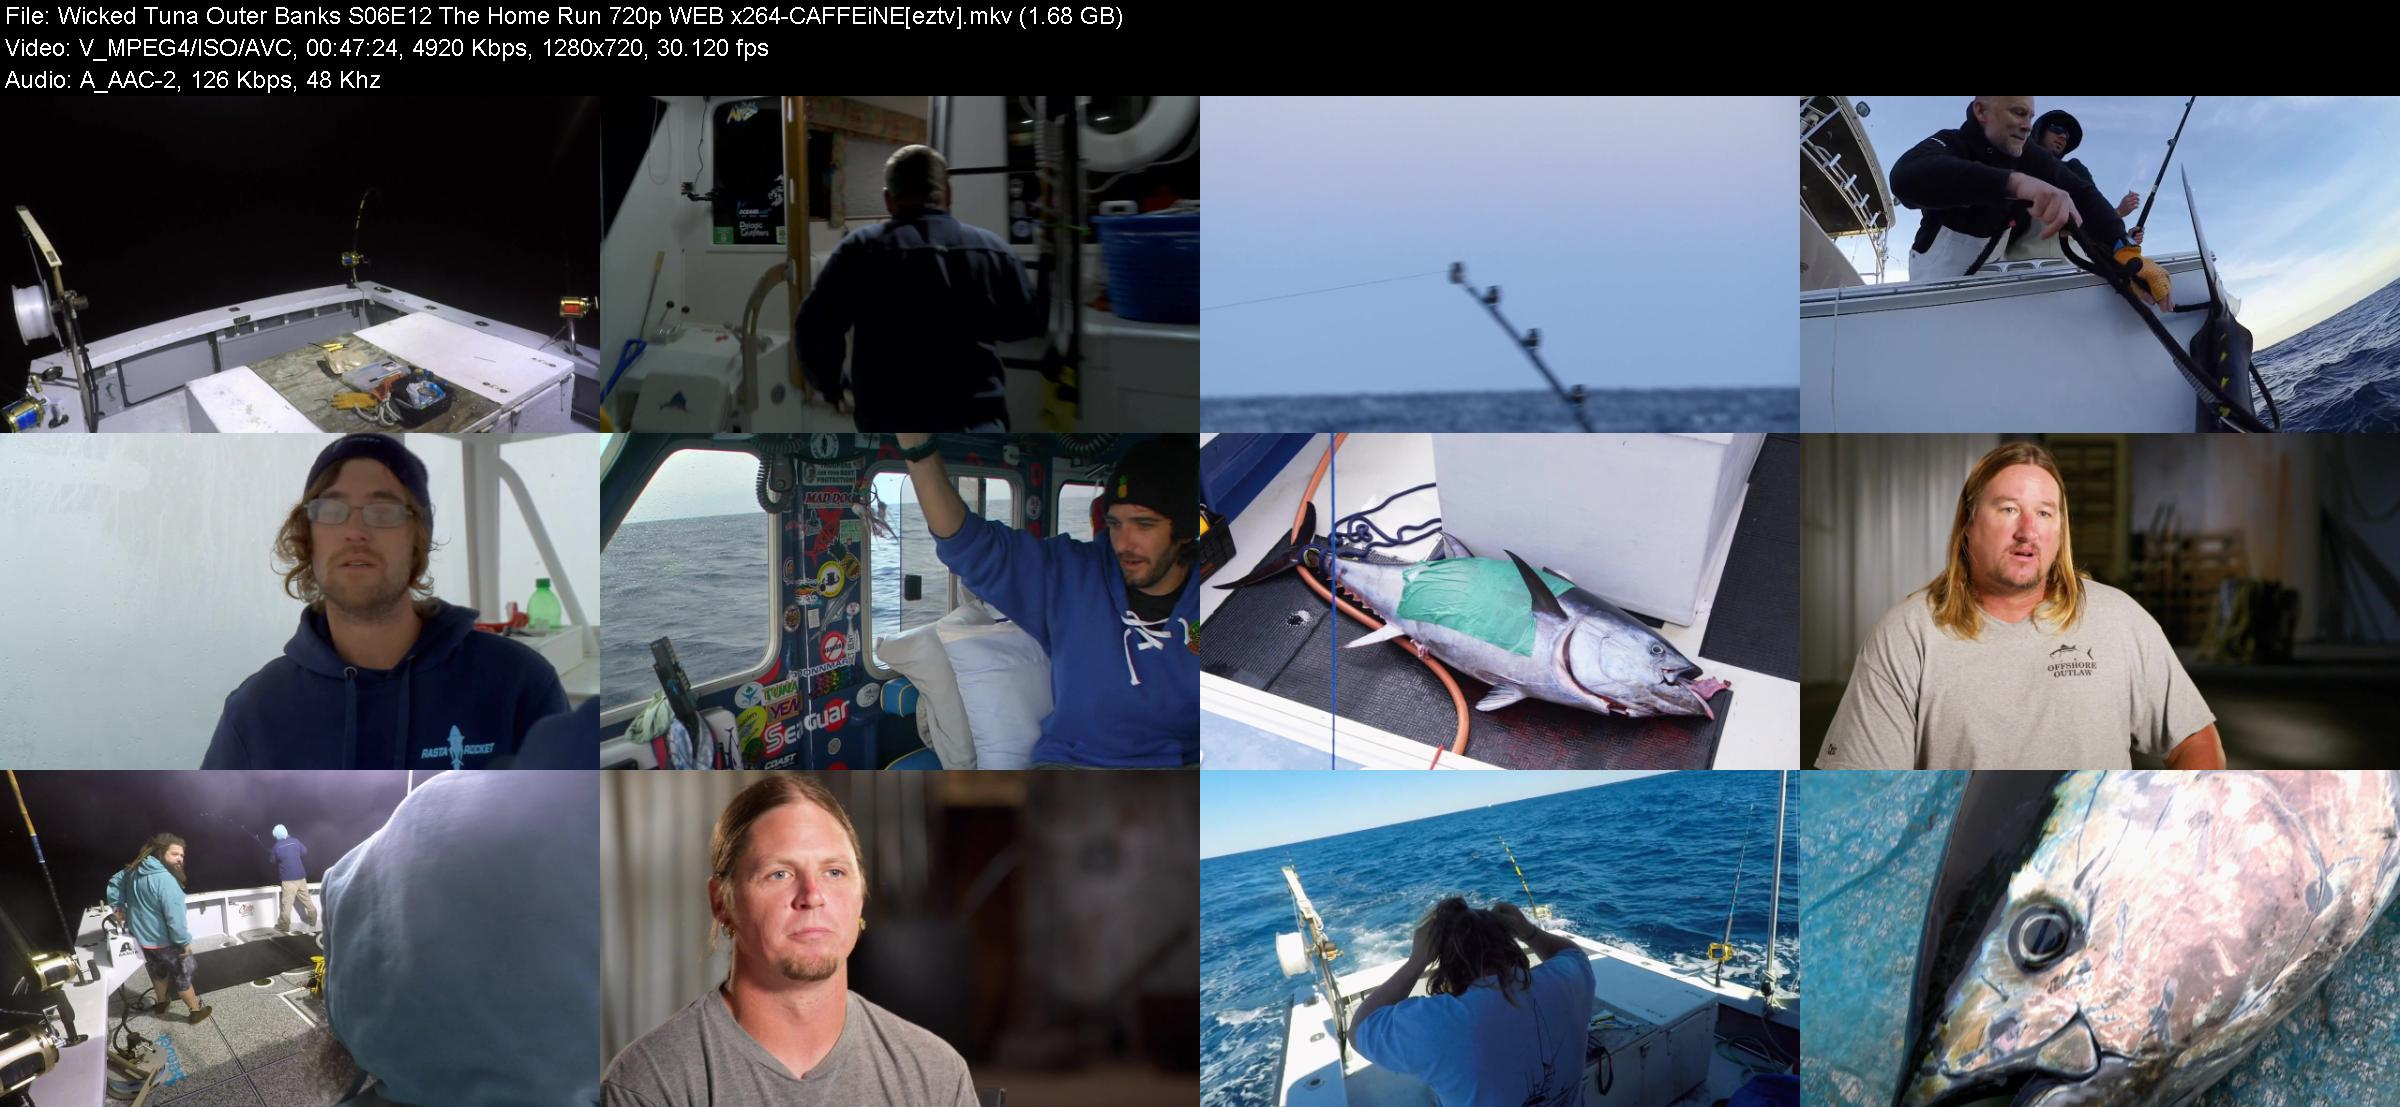 120558656_wicked-tuna-outer-banks-s06e12